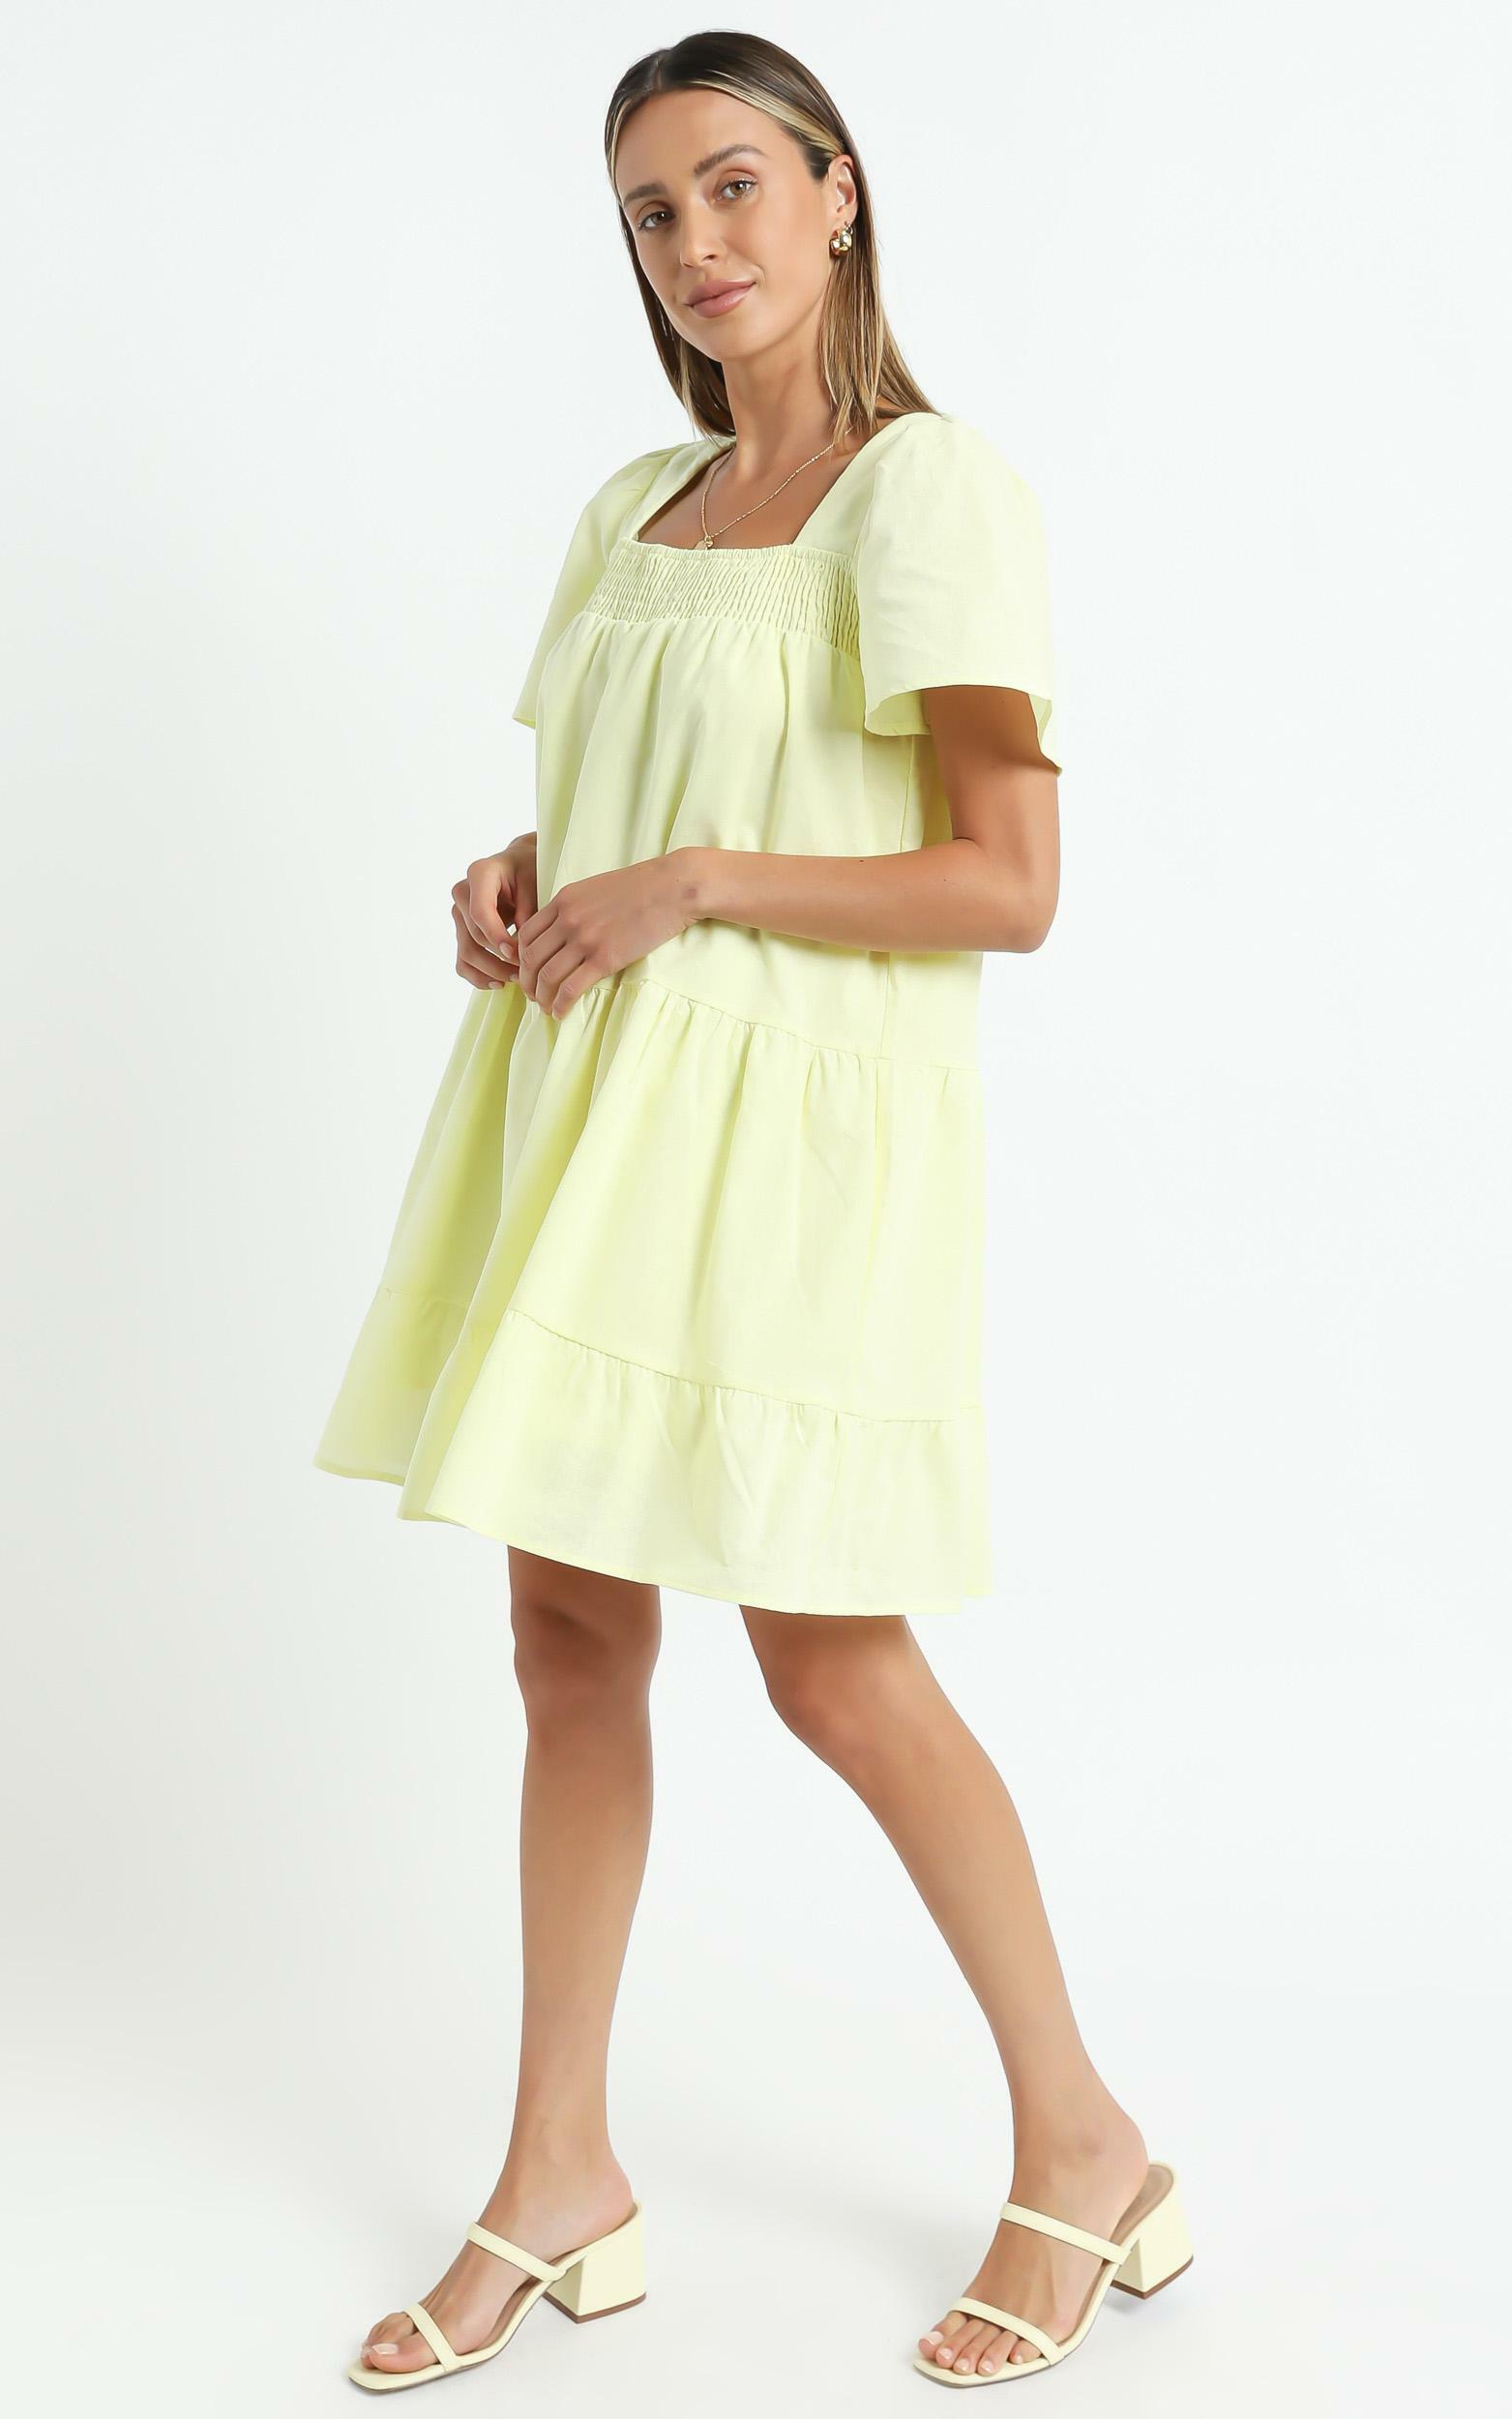 Donya Dress in Lemon - 6 (XS), Yellow, hi-res image number null